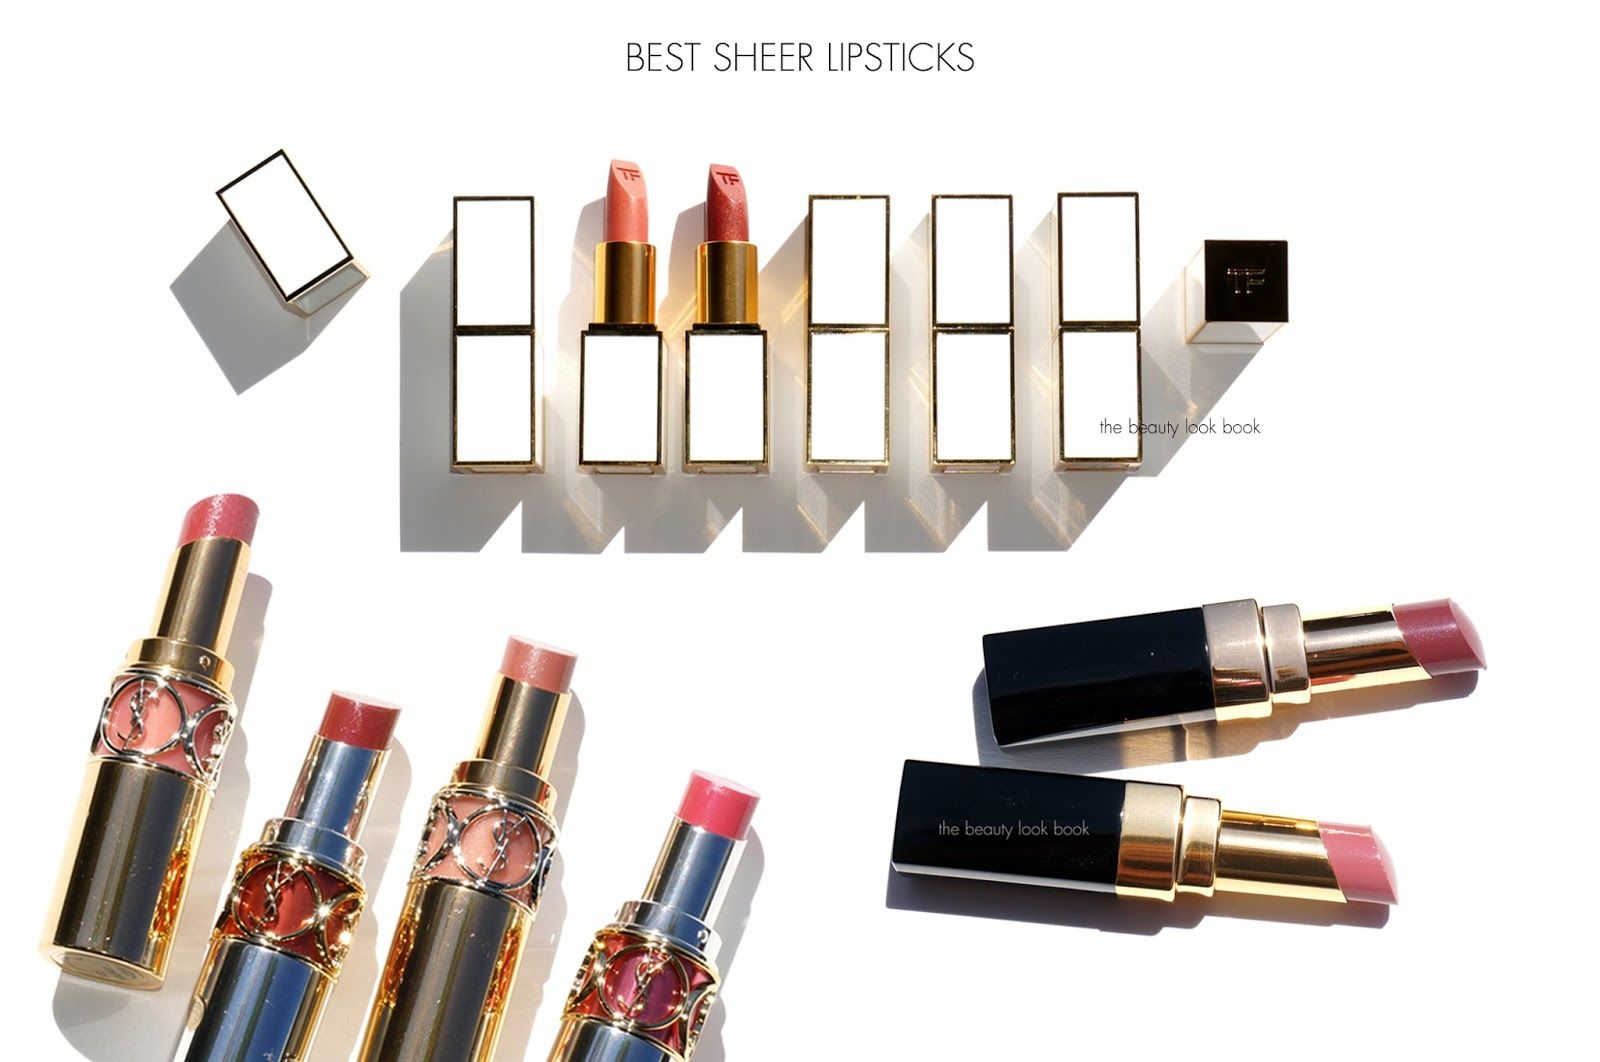 My Favorite Lipsticks of All Time (With images) Lipstick